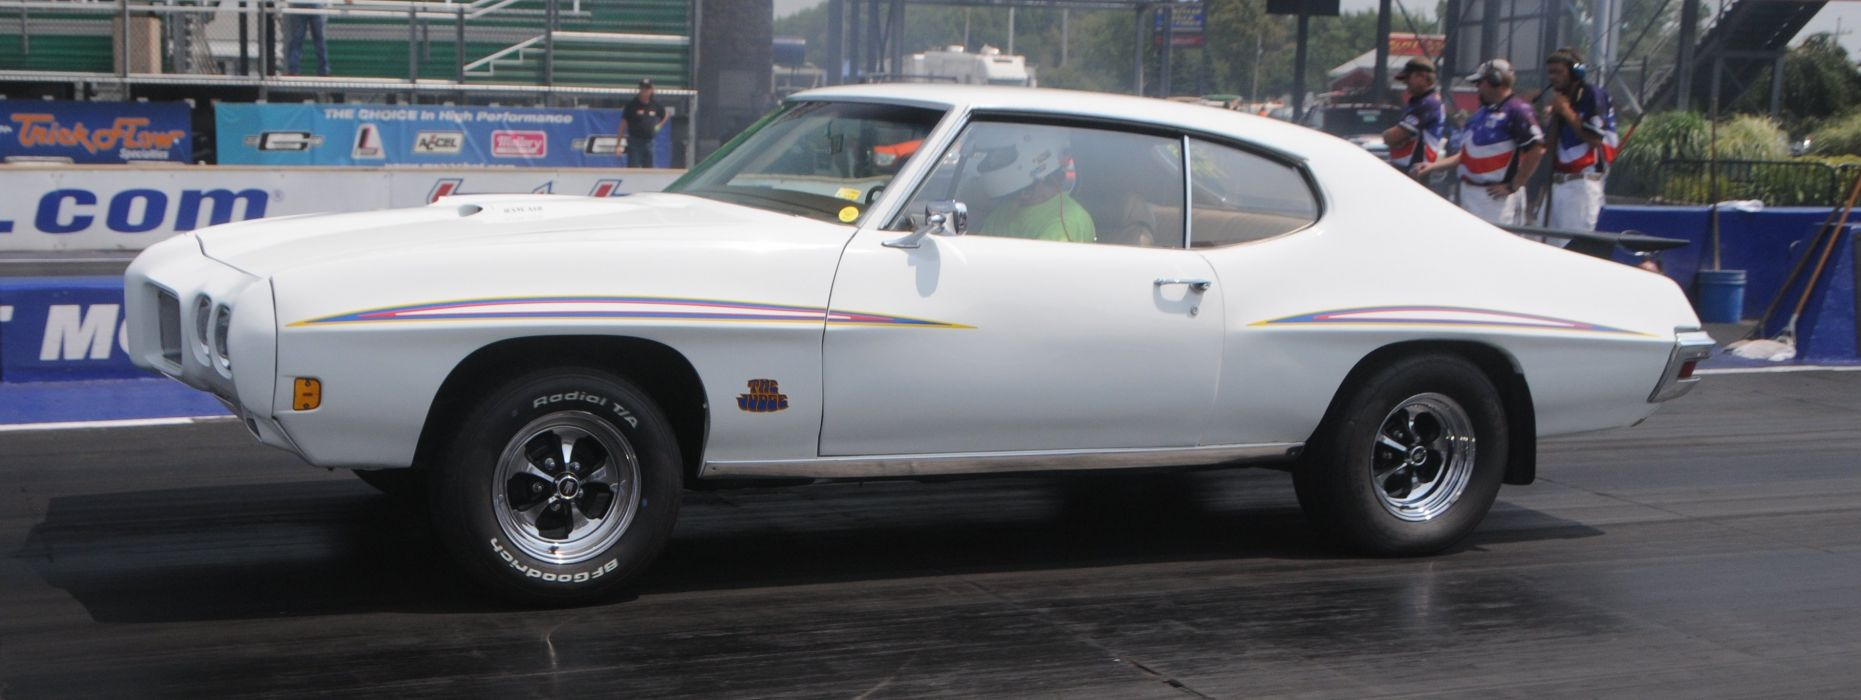 DRAG RACING hot rod rods race muscle pontiac gto judge d wallpaper